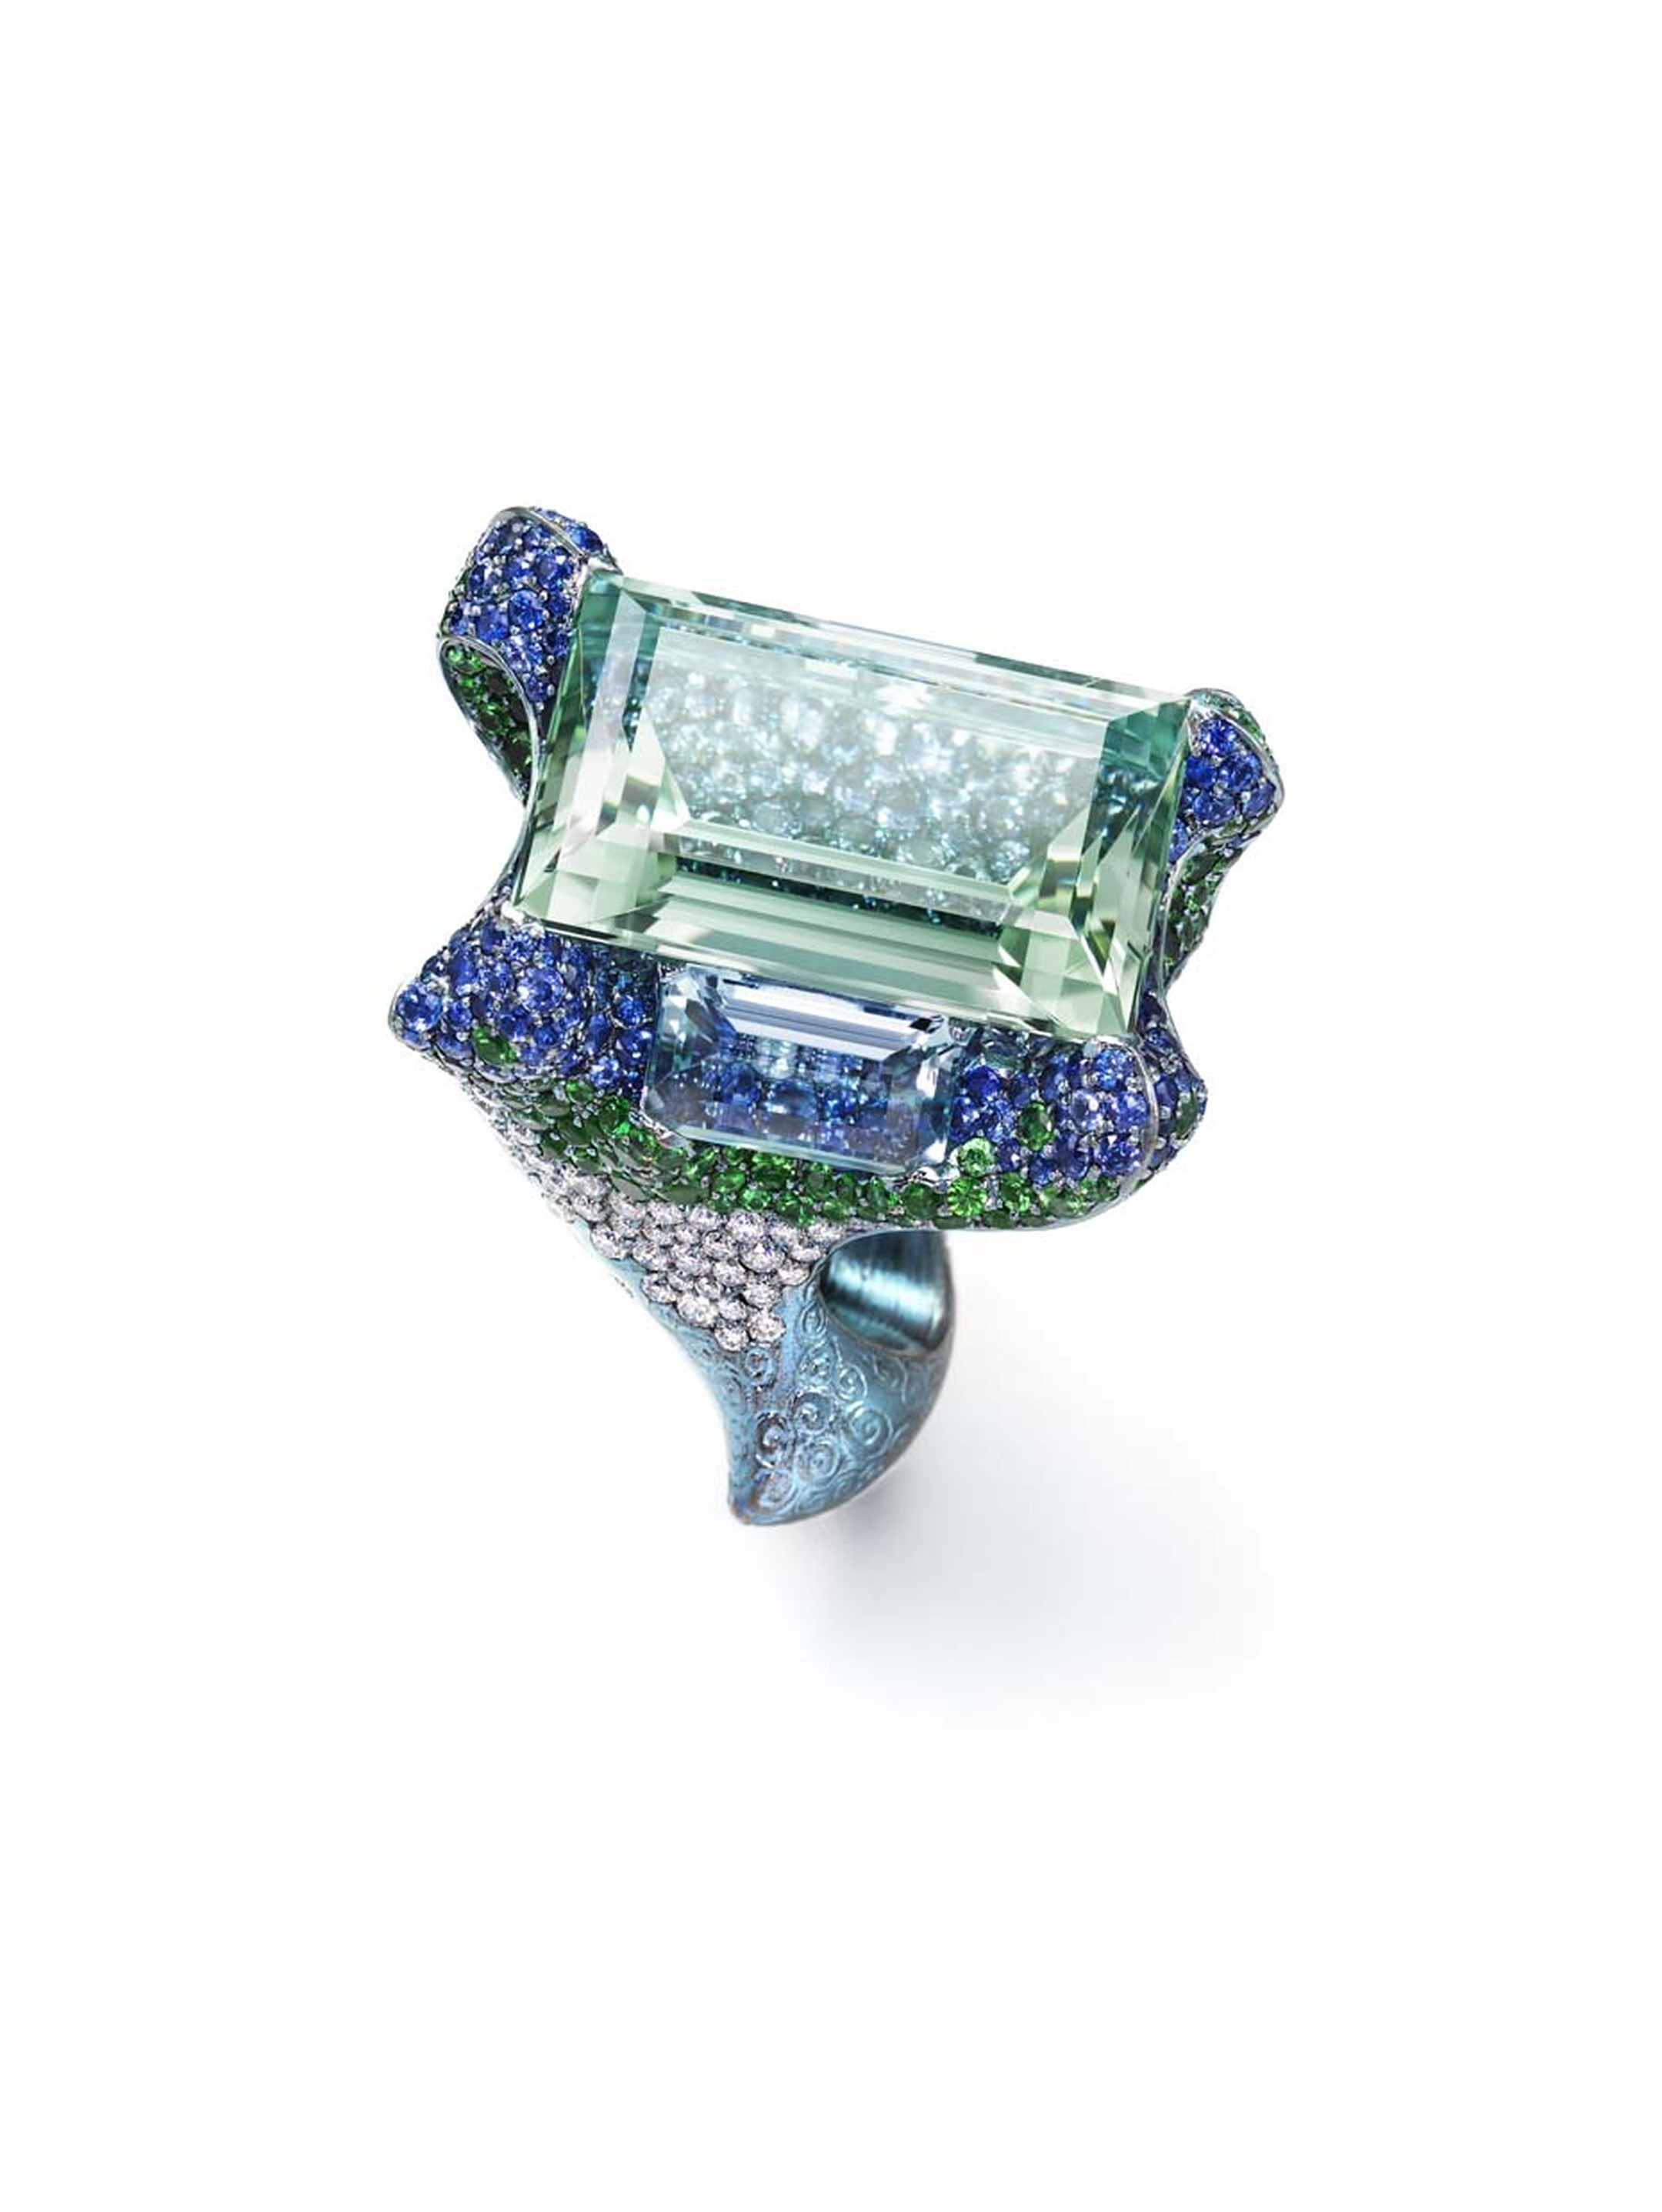 Wallace Chan Cloudless Climes ring set with a central 31.13ct aquamarine and two additional aquamarines, diamonds, tsavorites, garnets and sapphires